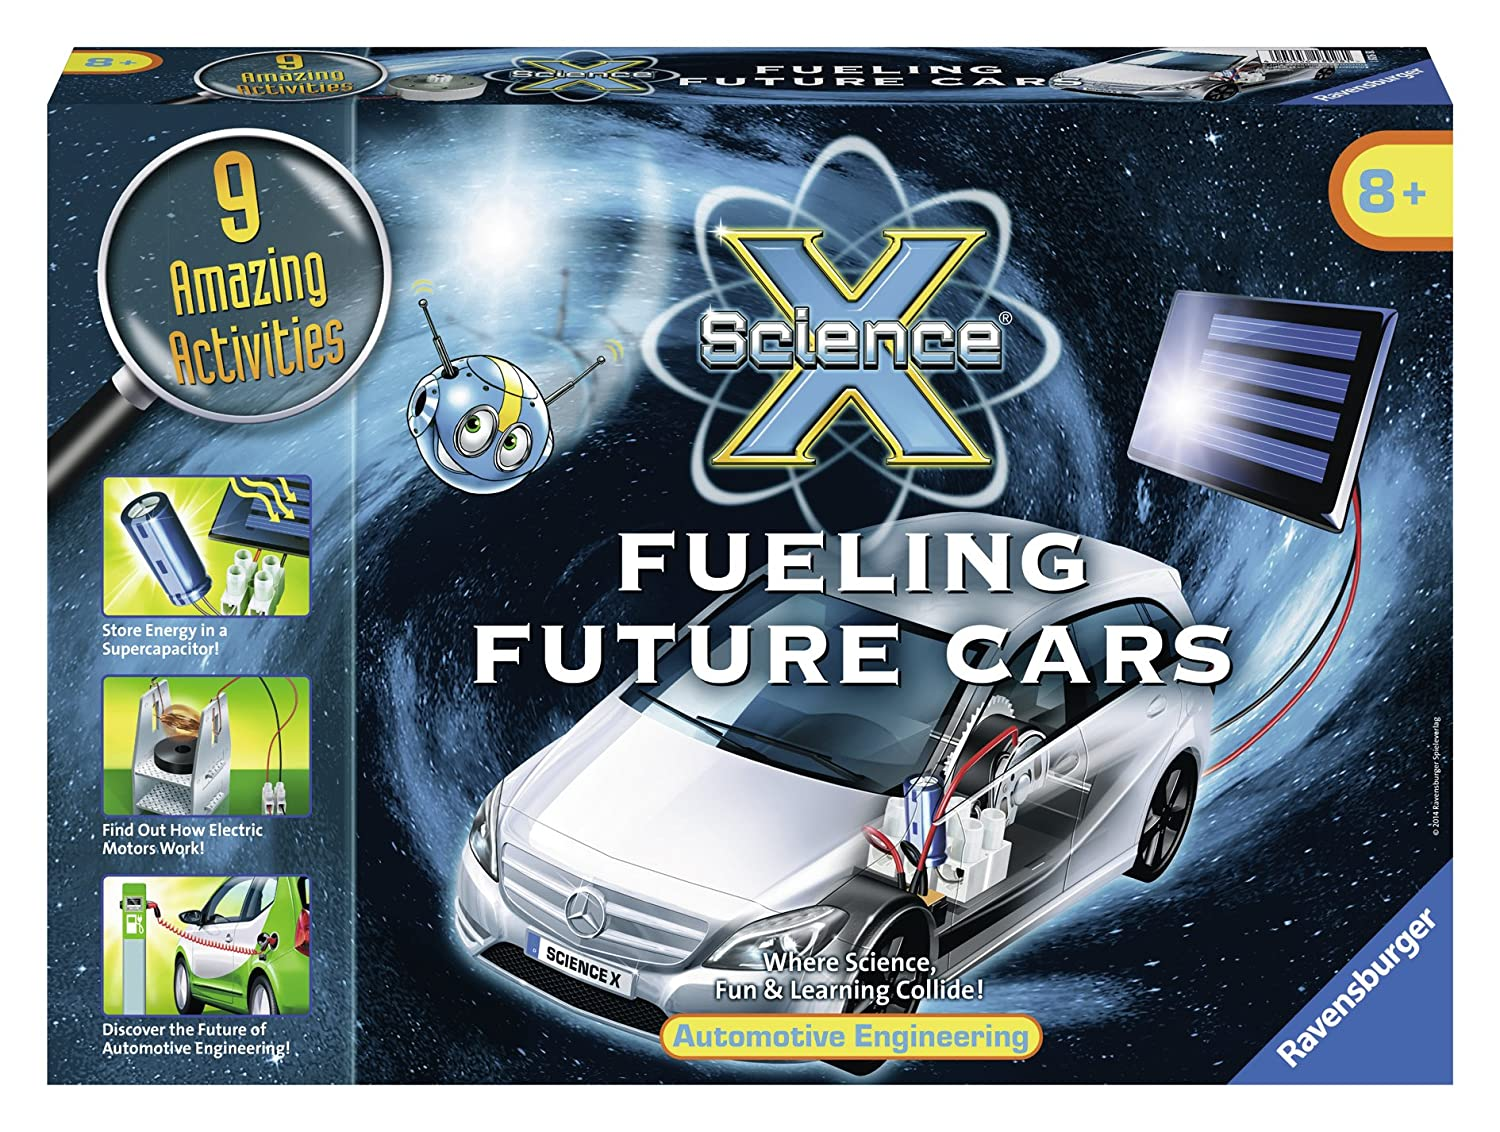 Likely cars of the future likely cars of the future http www - Amazon Com Ravensburger Science X Fueling Future Cars Science Activity Kit Toys Games